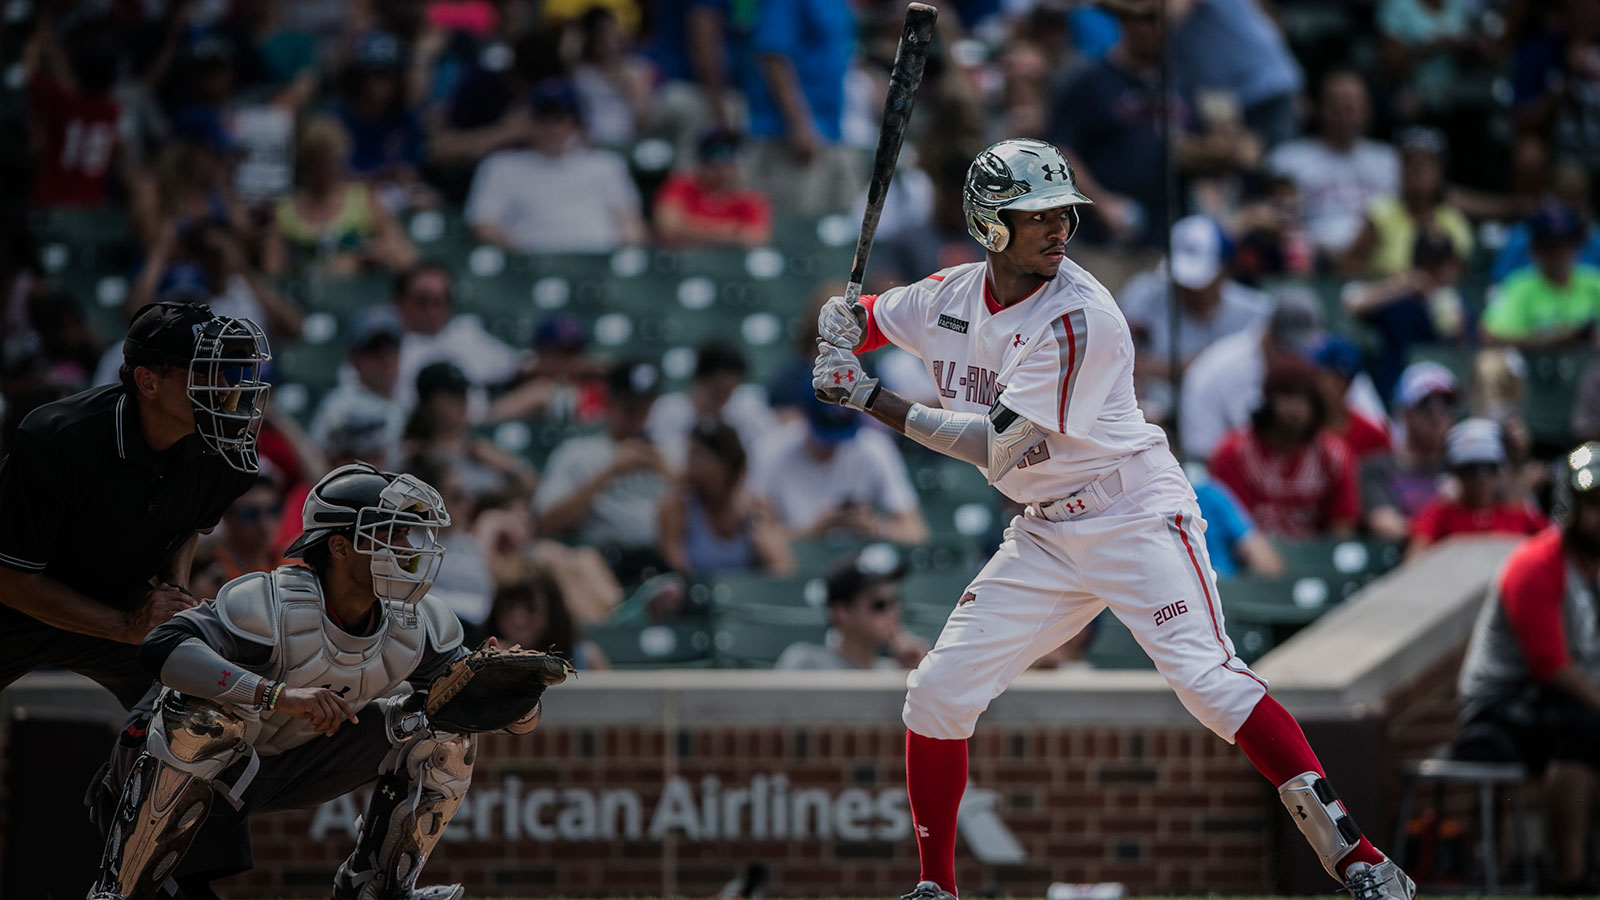 2017 History/Results - Under Armour All-America